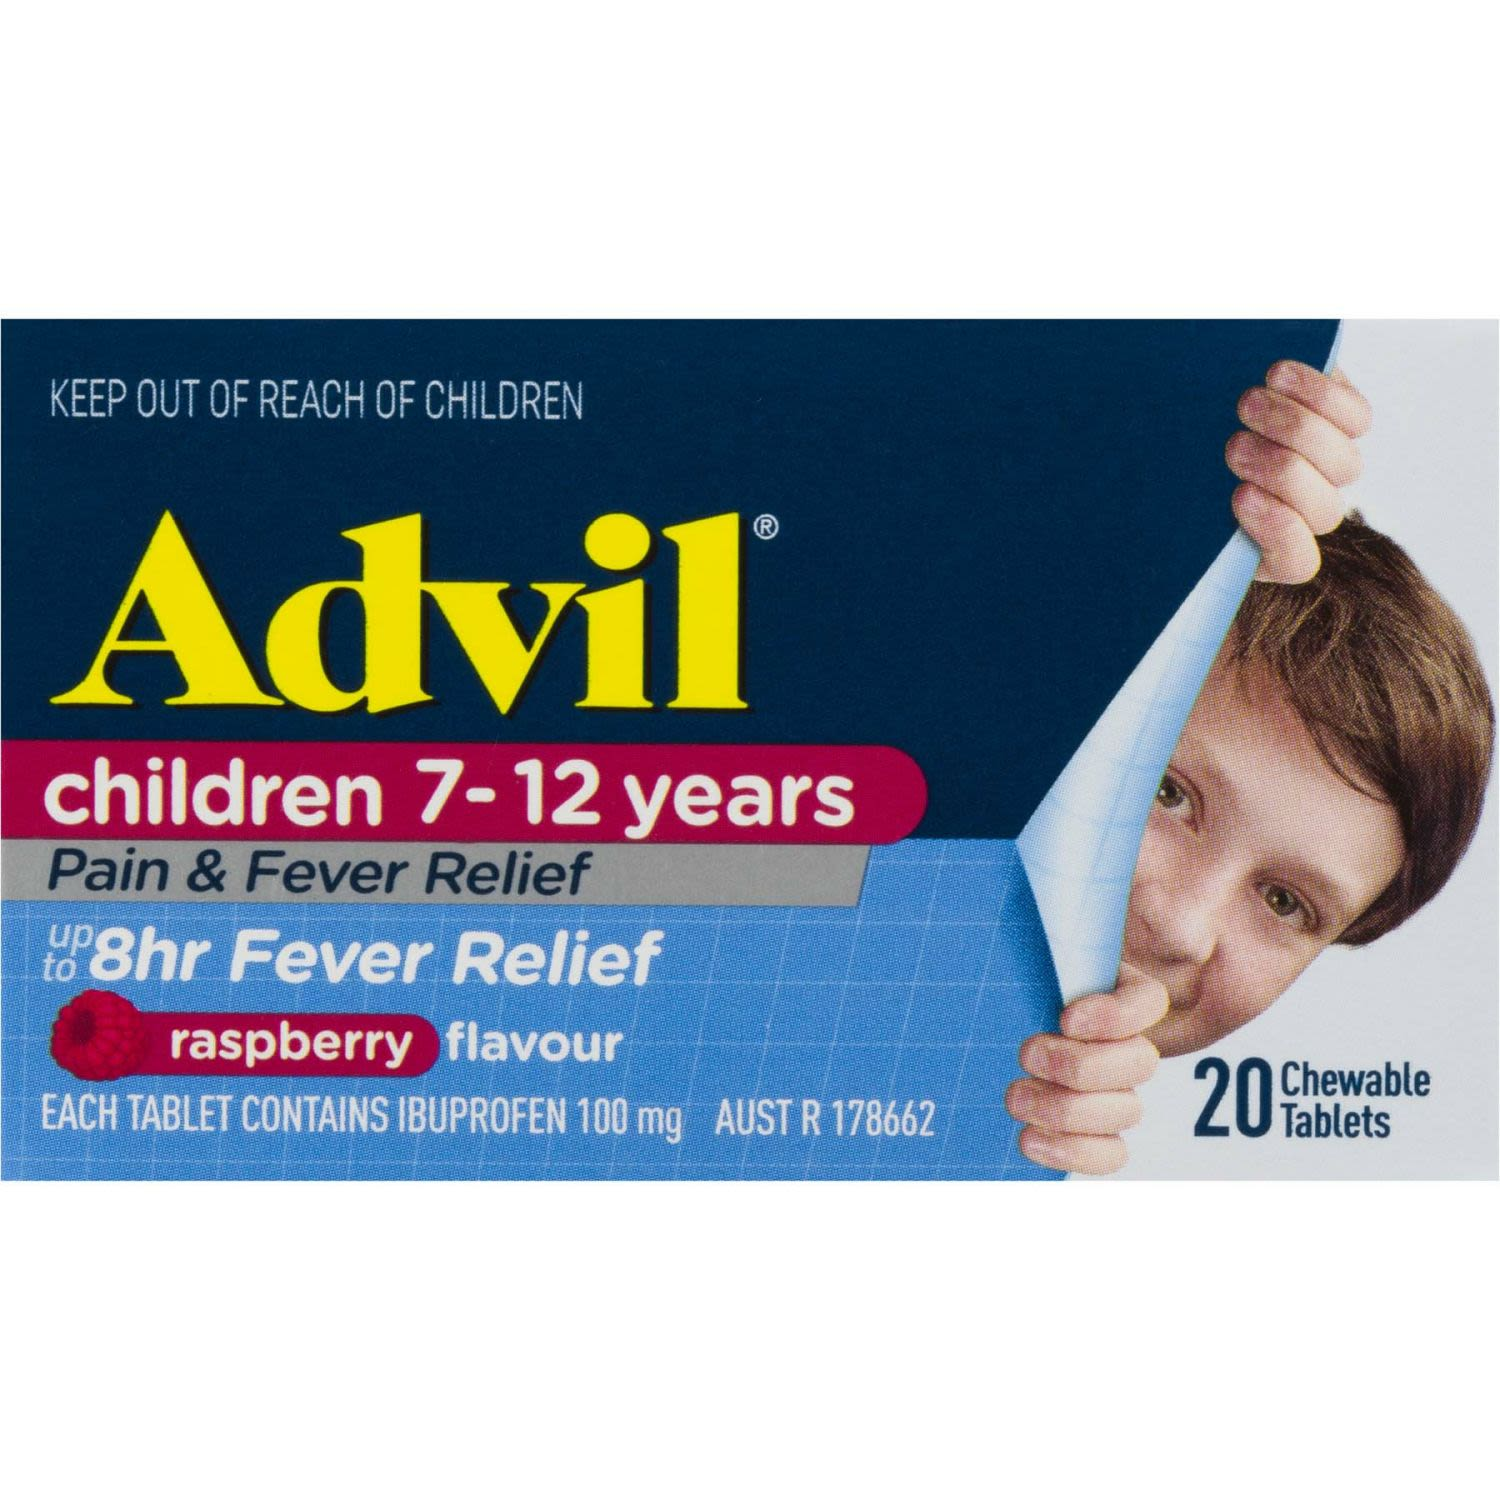 Advil Pain & Fever 7-12 Years Chewable, 20 Each